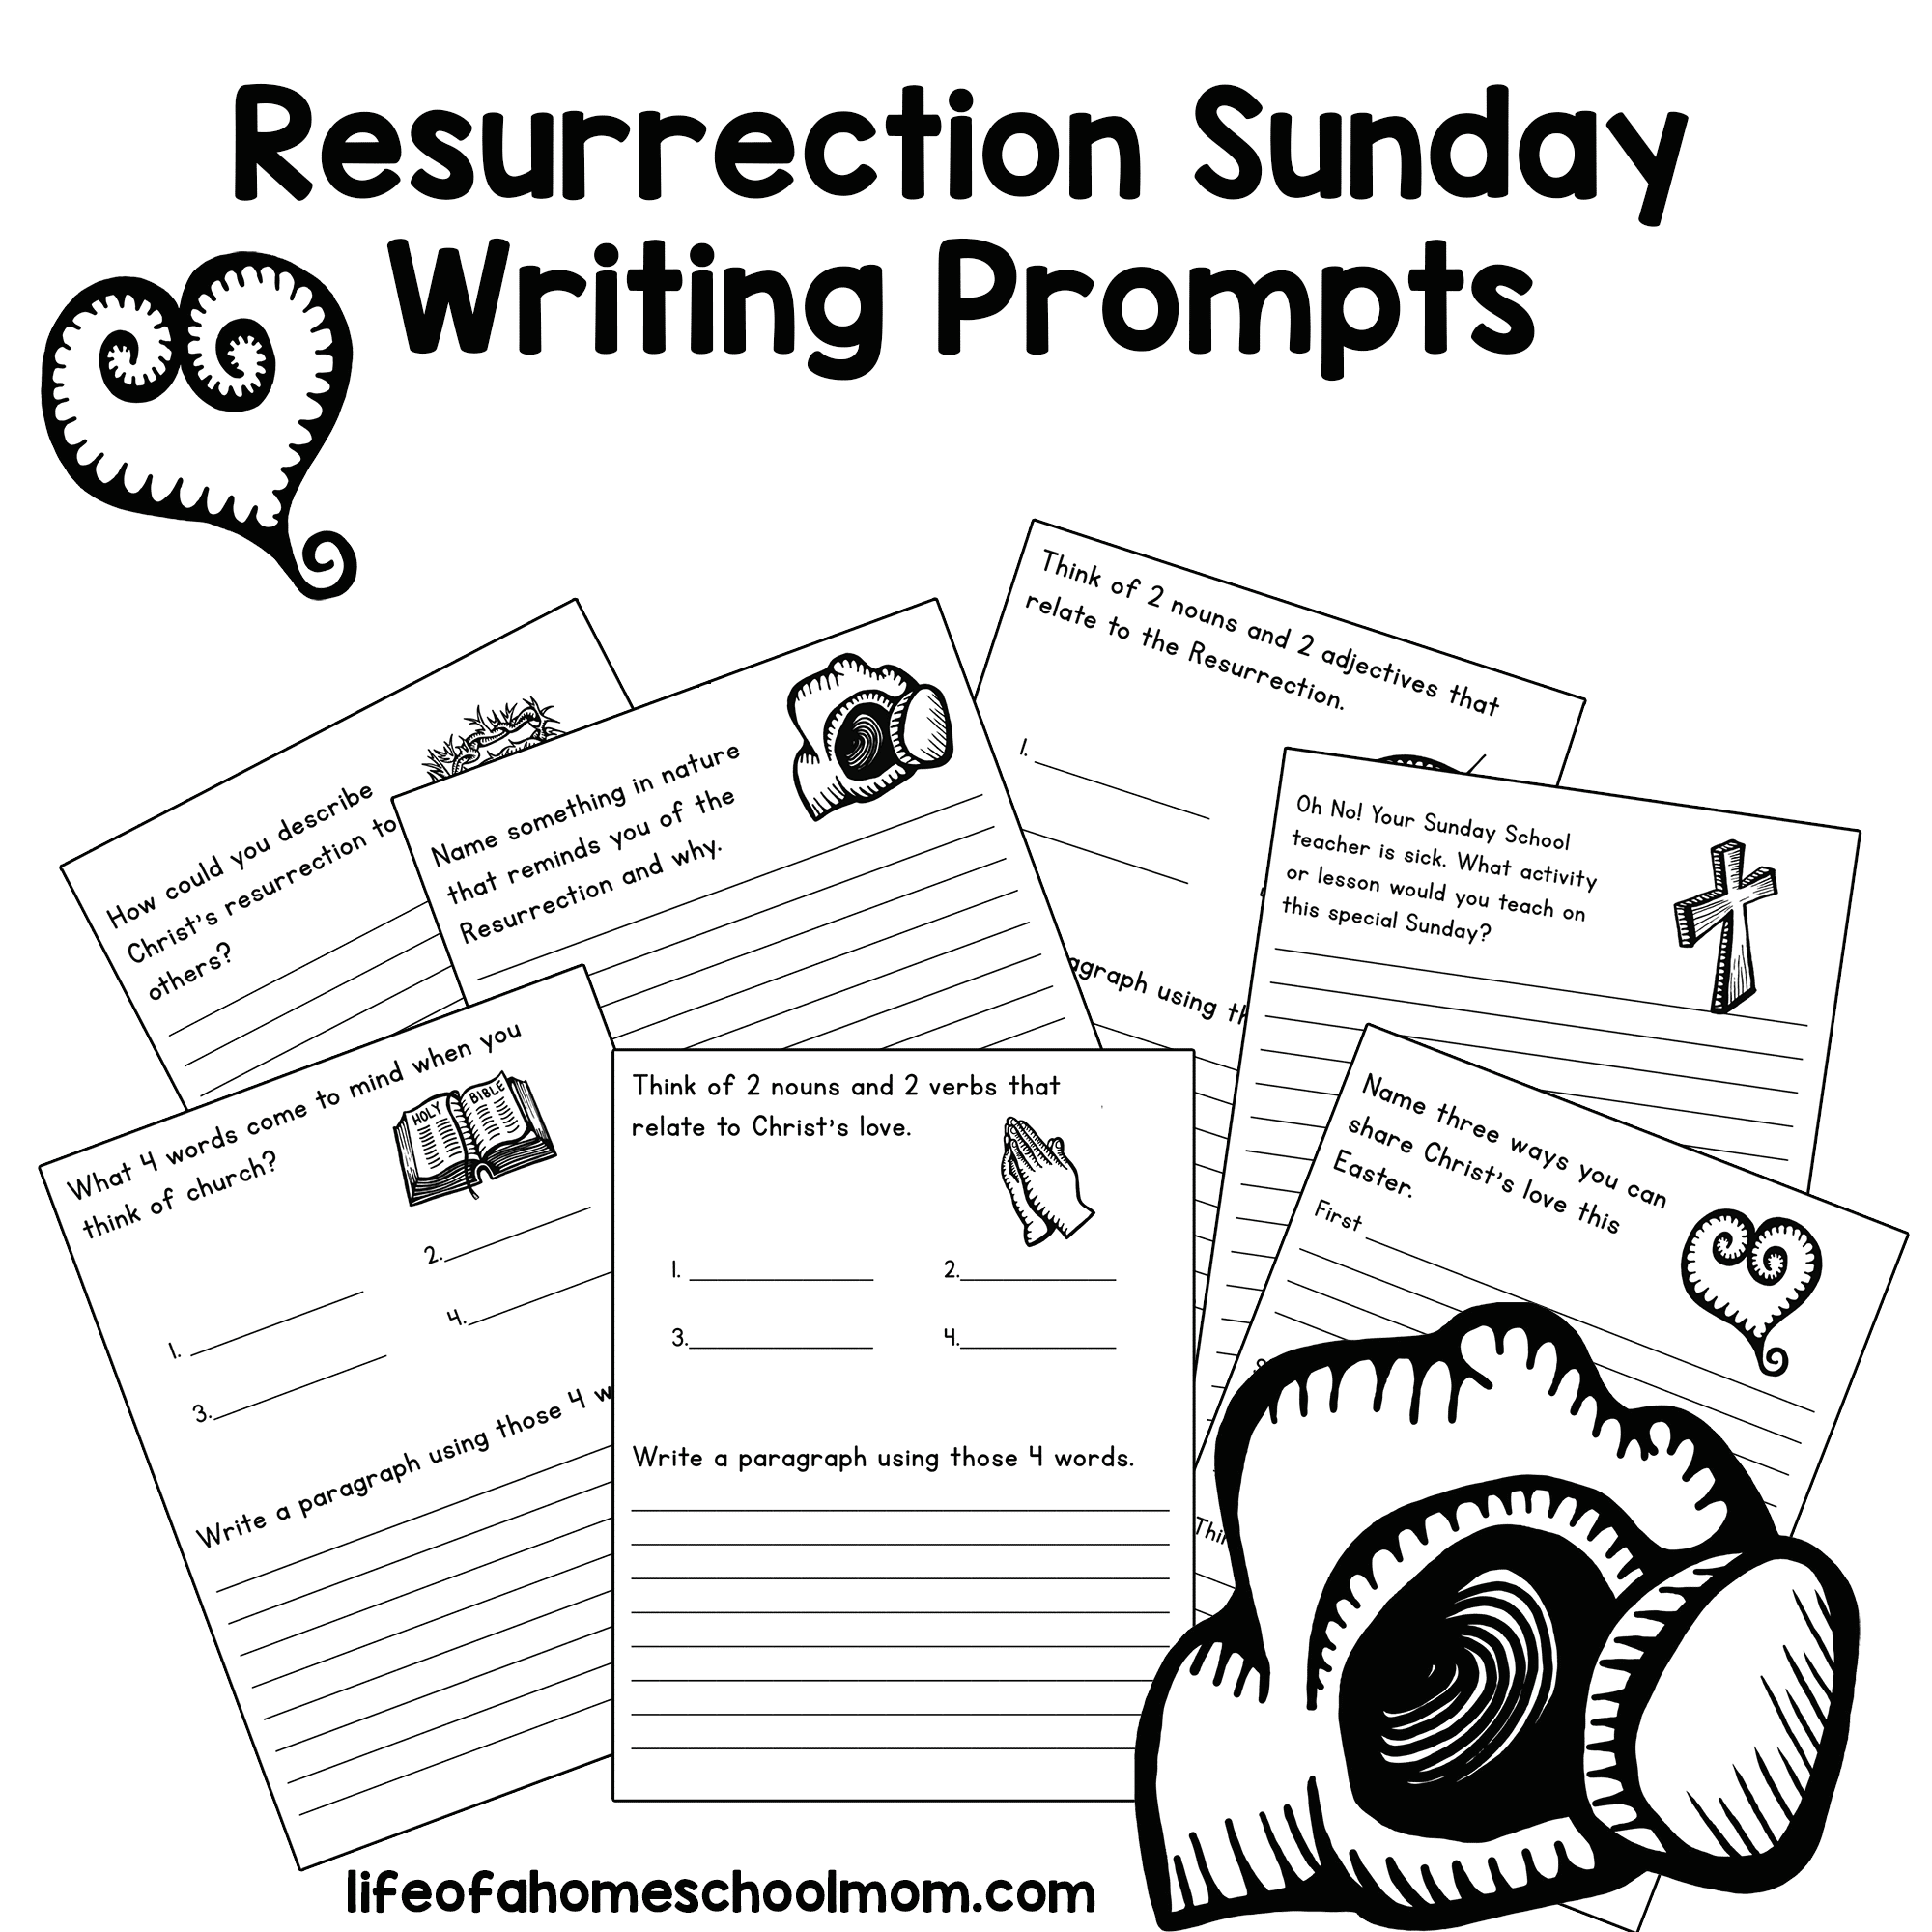 FREE Resurrection Day Writing Prompts for Kids